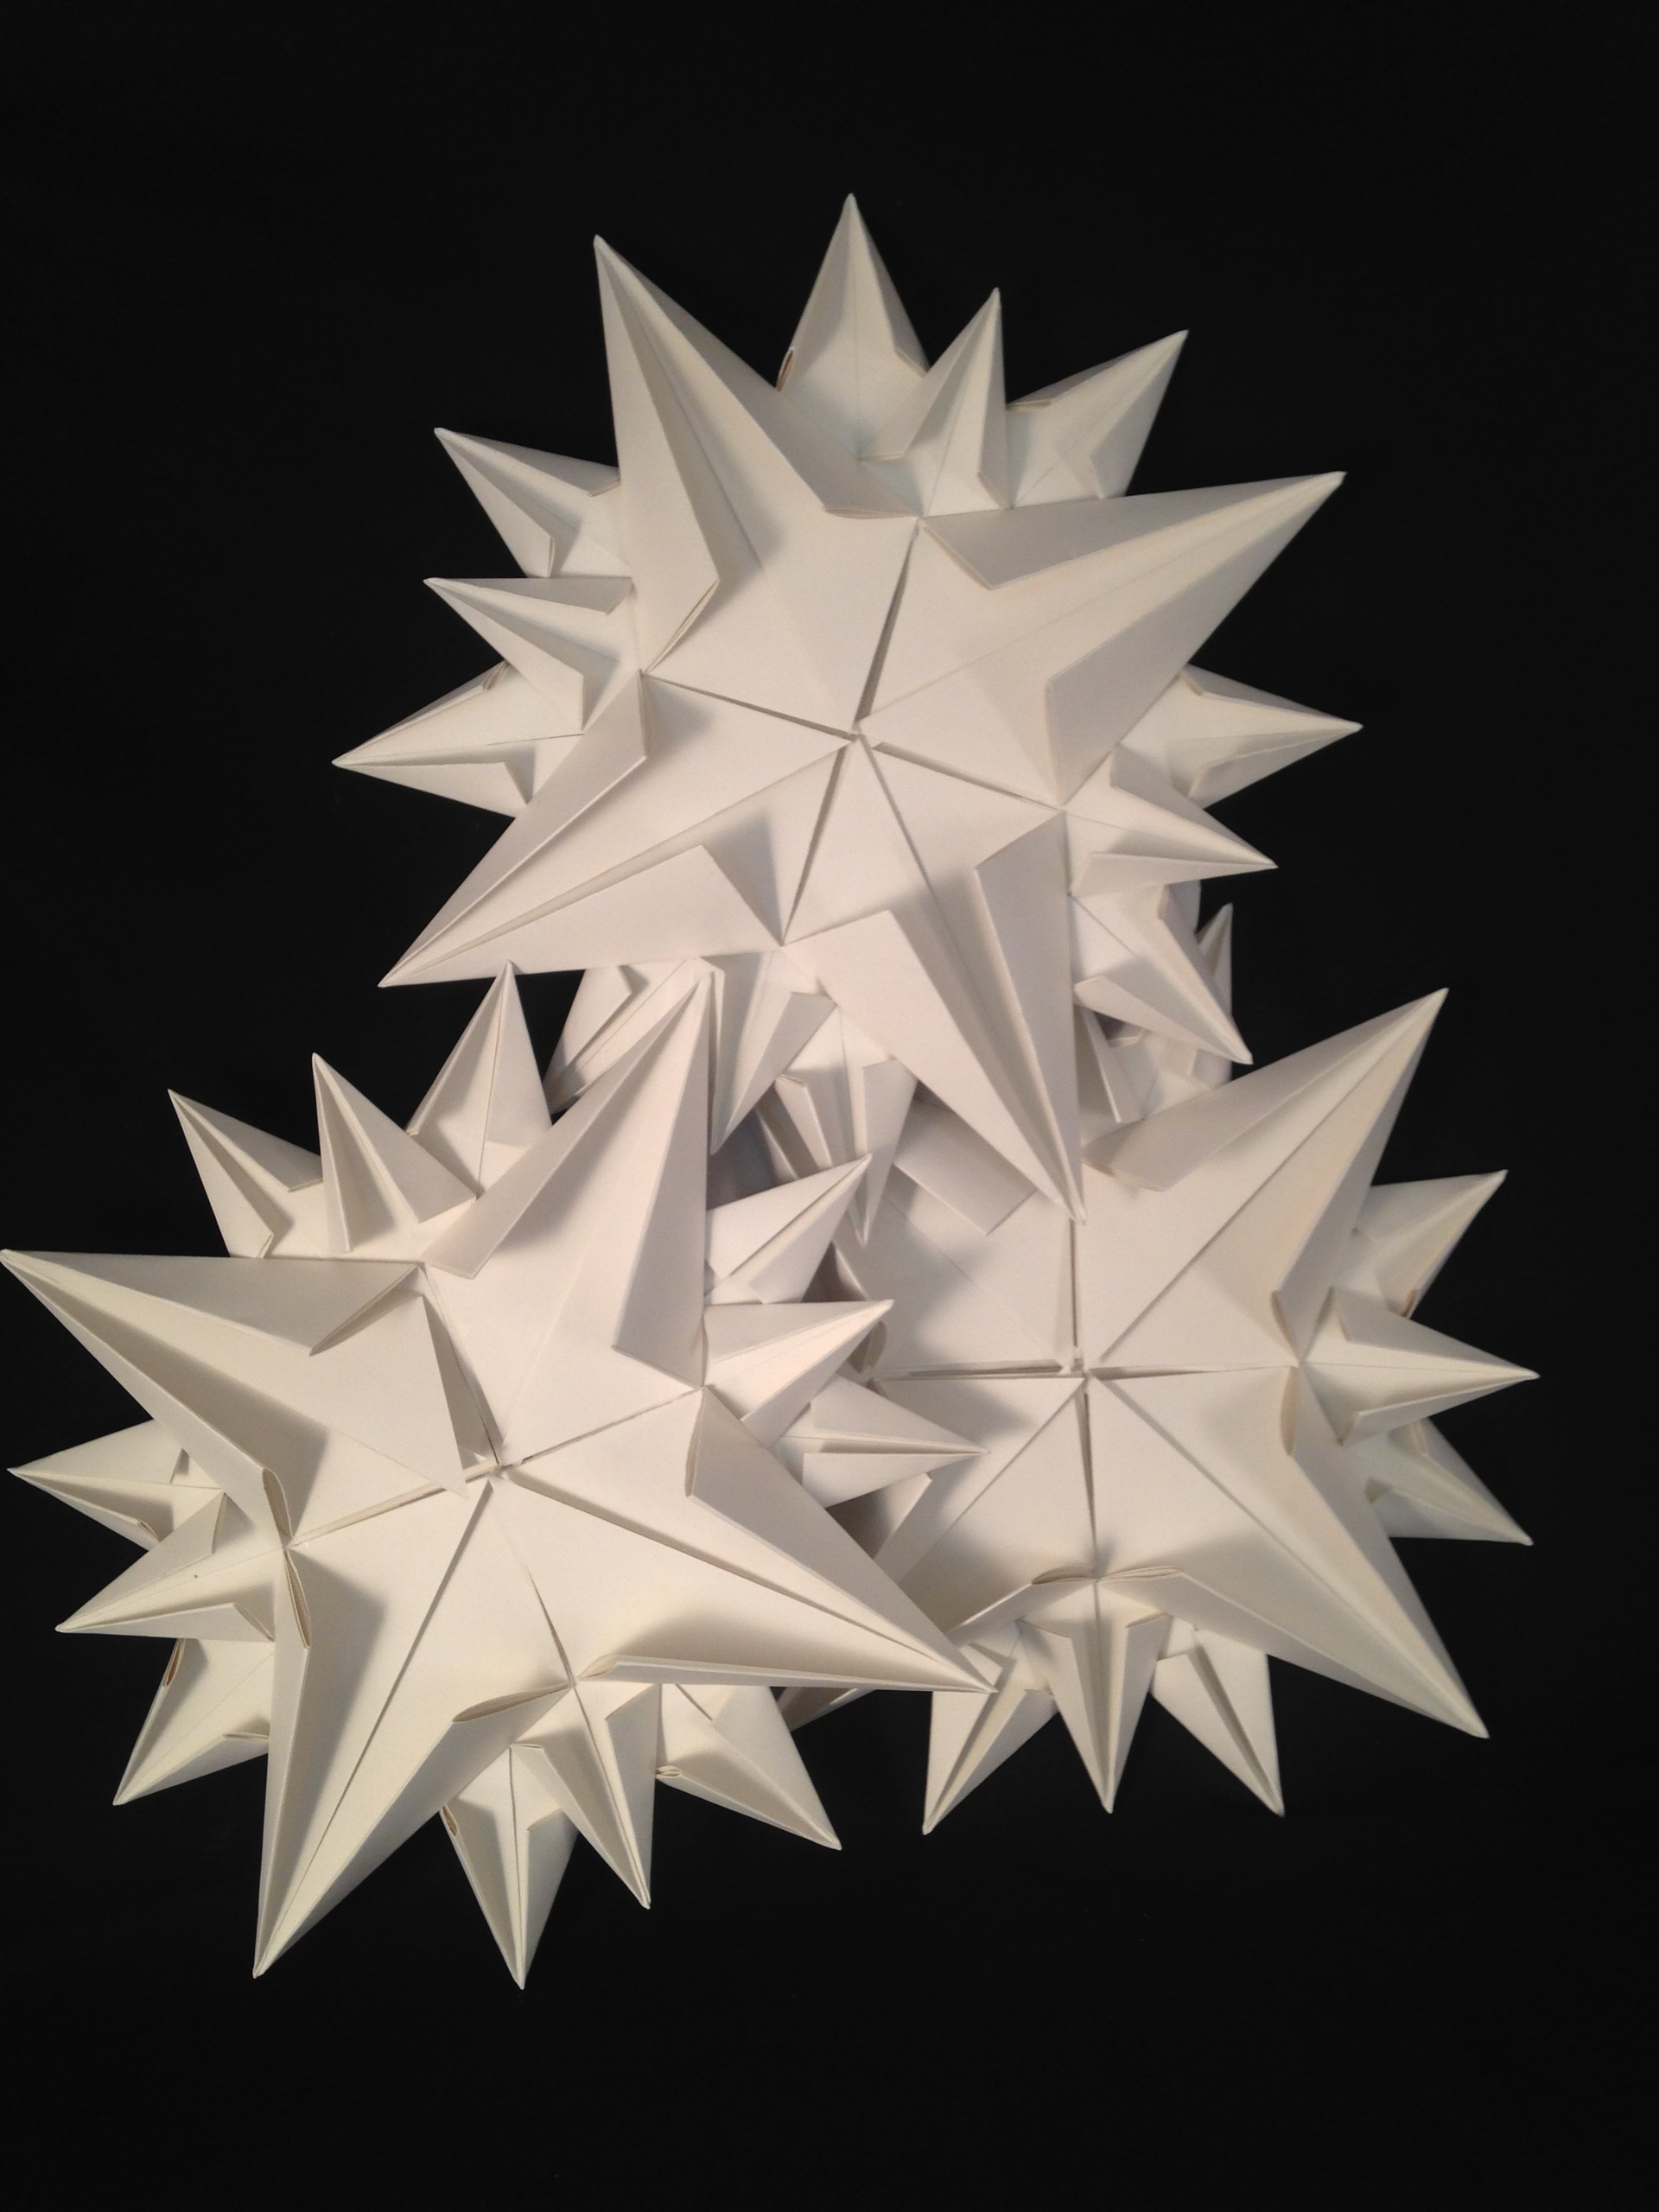 sculpture of white stars